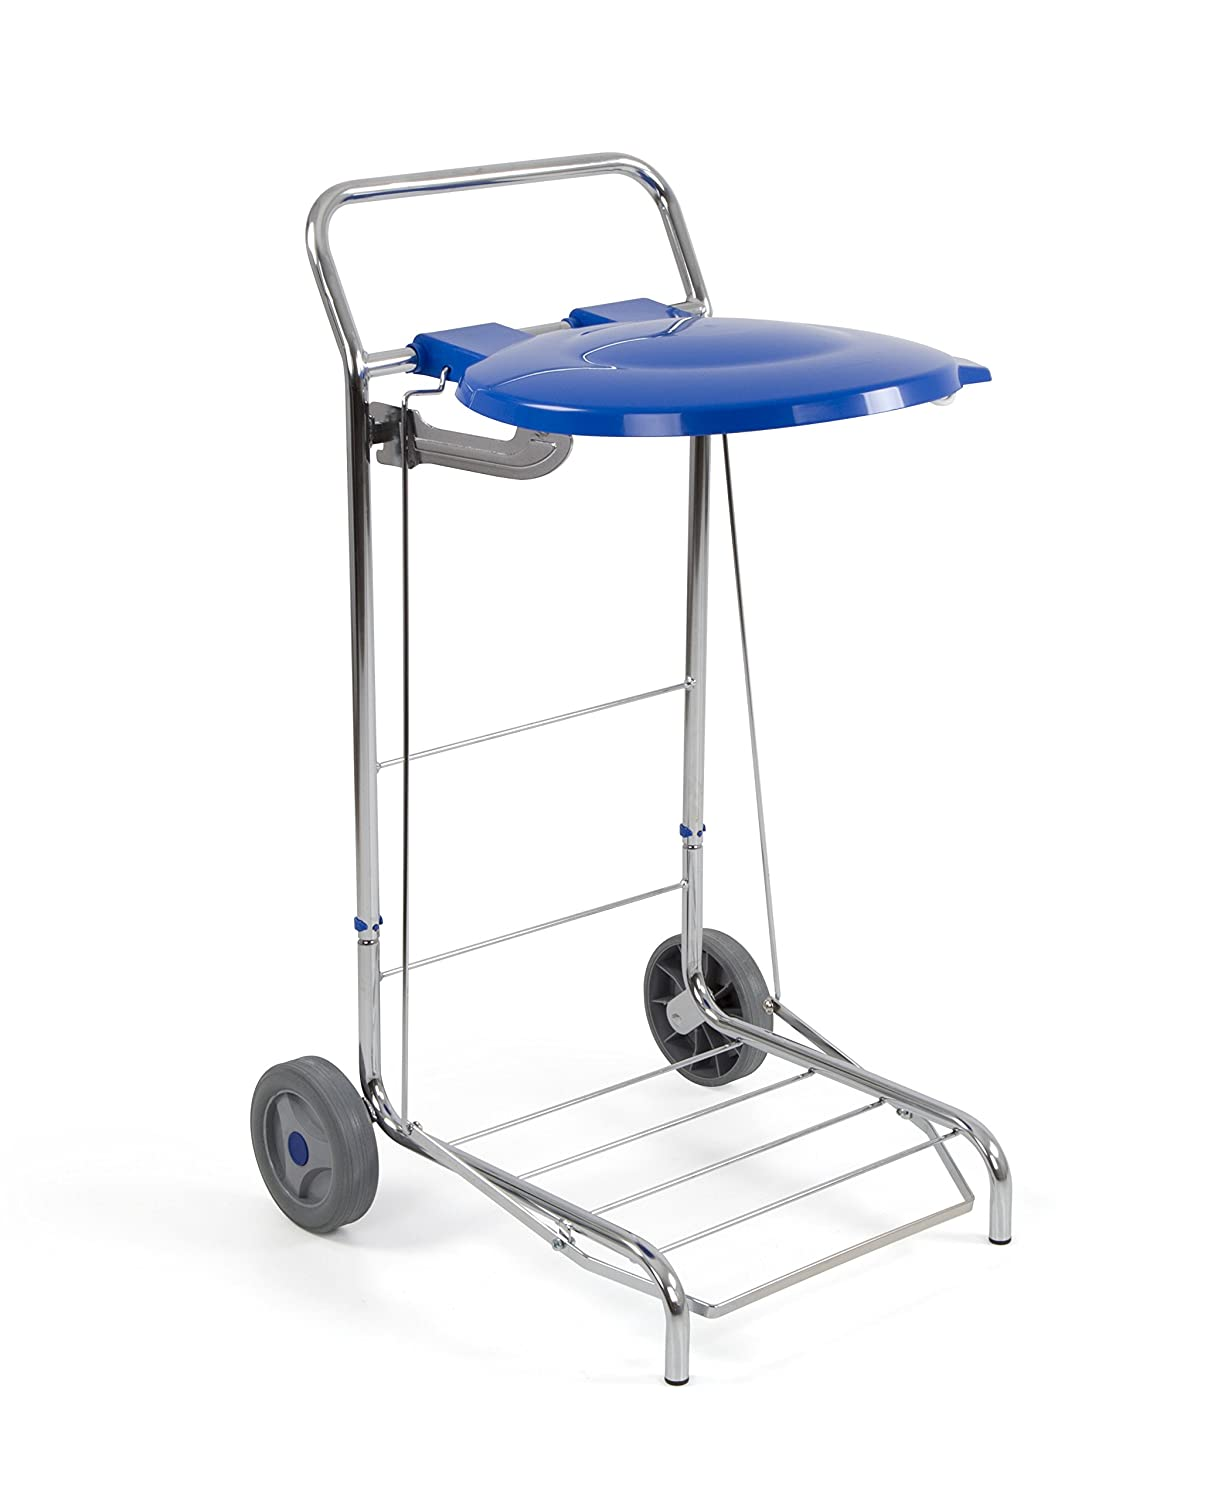 Two/Small Trays and One 75-litre Bag Jofel AL50250/Metallic Cart Trolley One/Large Tray Stainless Steel AISI 304